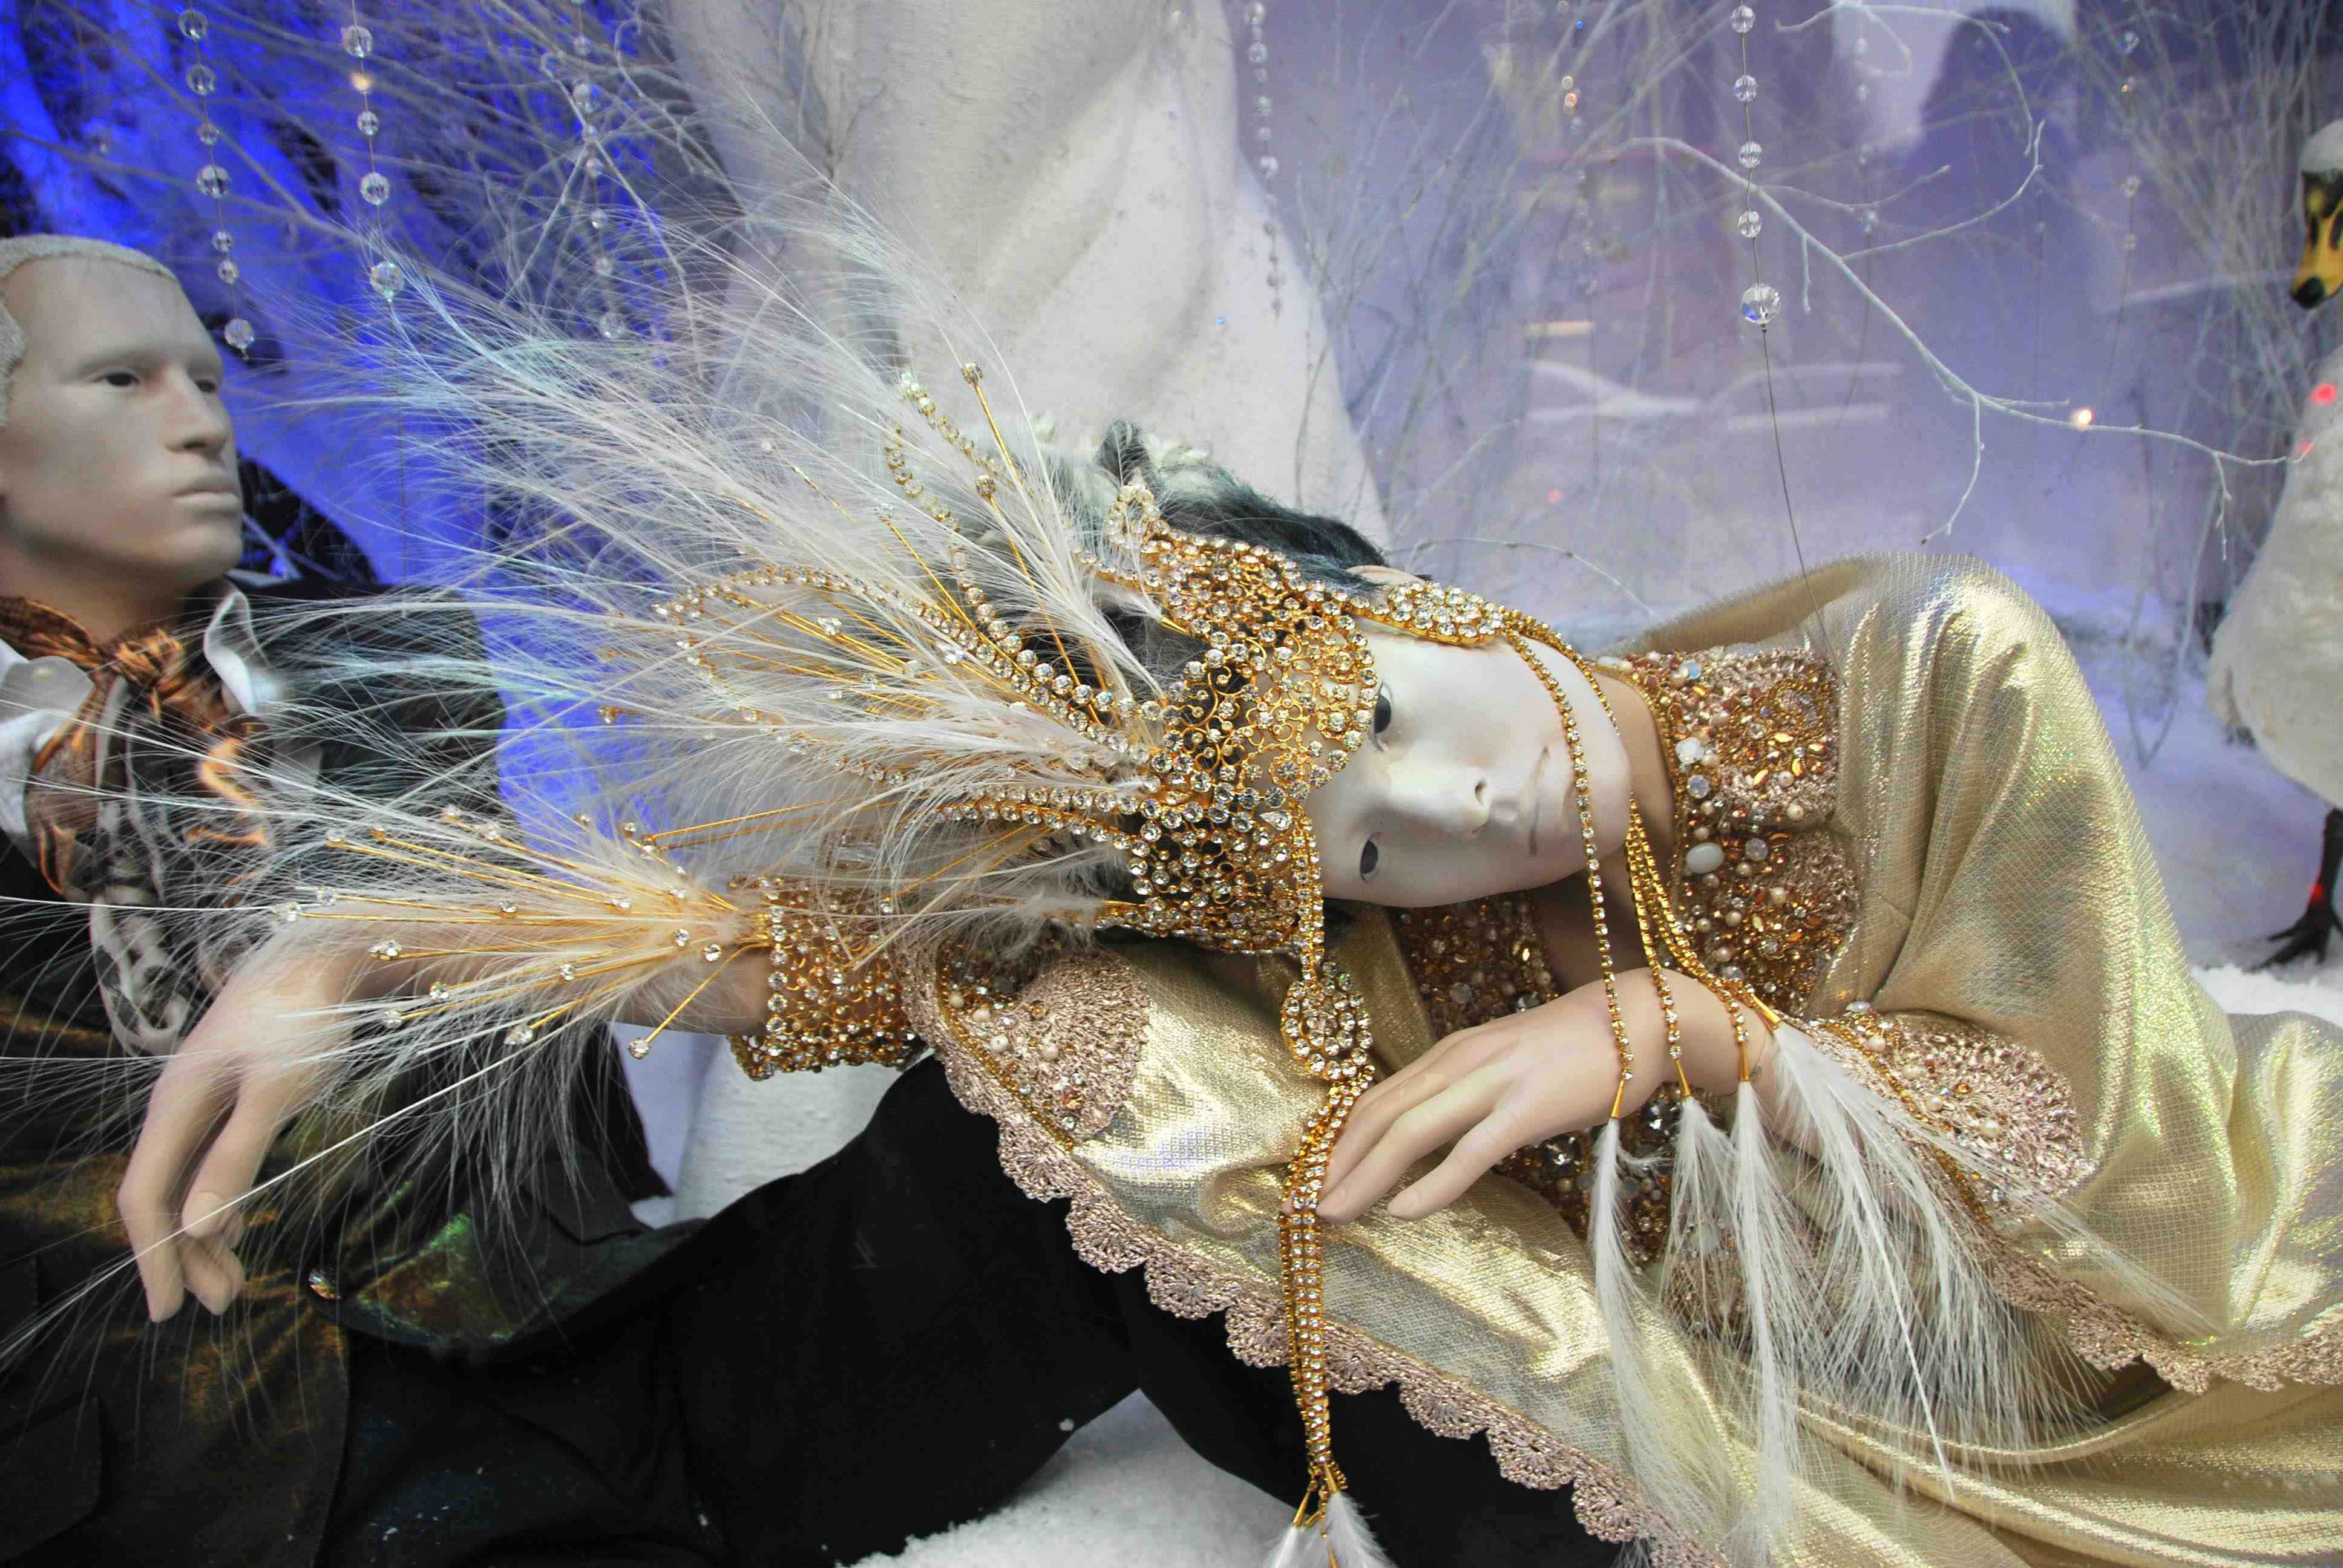 This Christmas jewelry window display features two realistic mannequins, one of them adorned in precious jewelry and gold thread clothing.